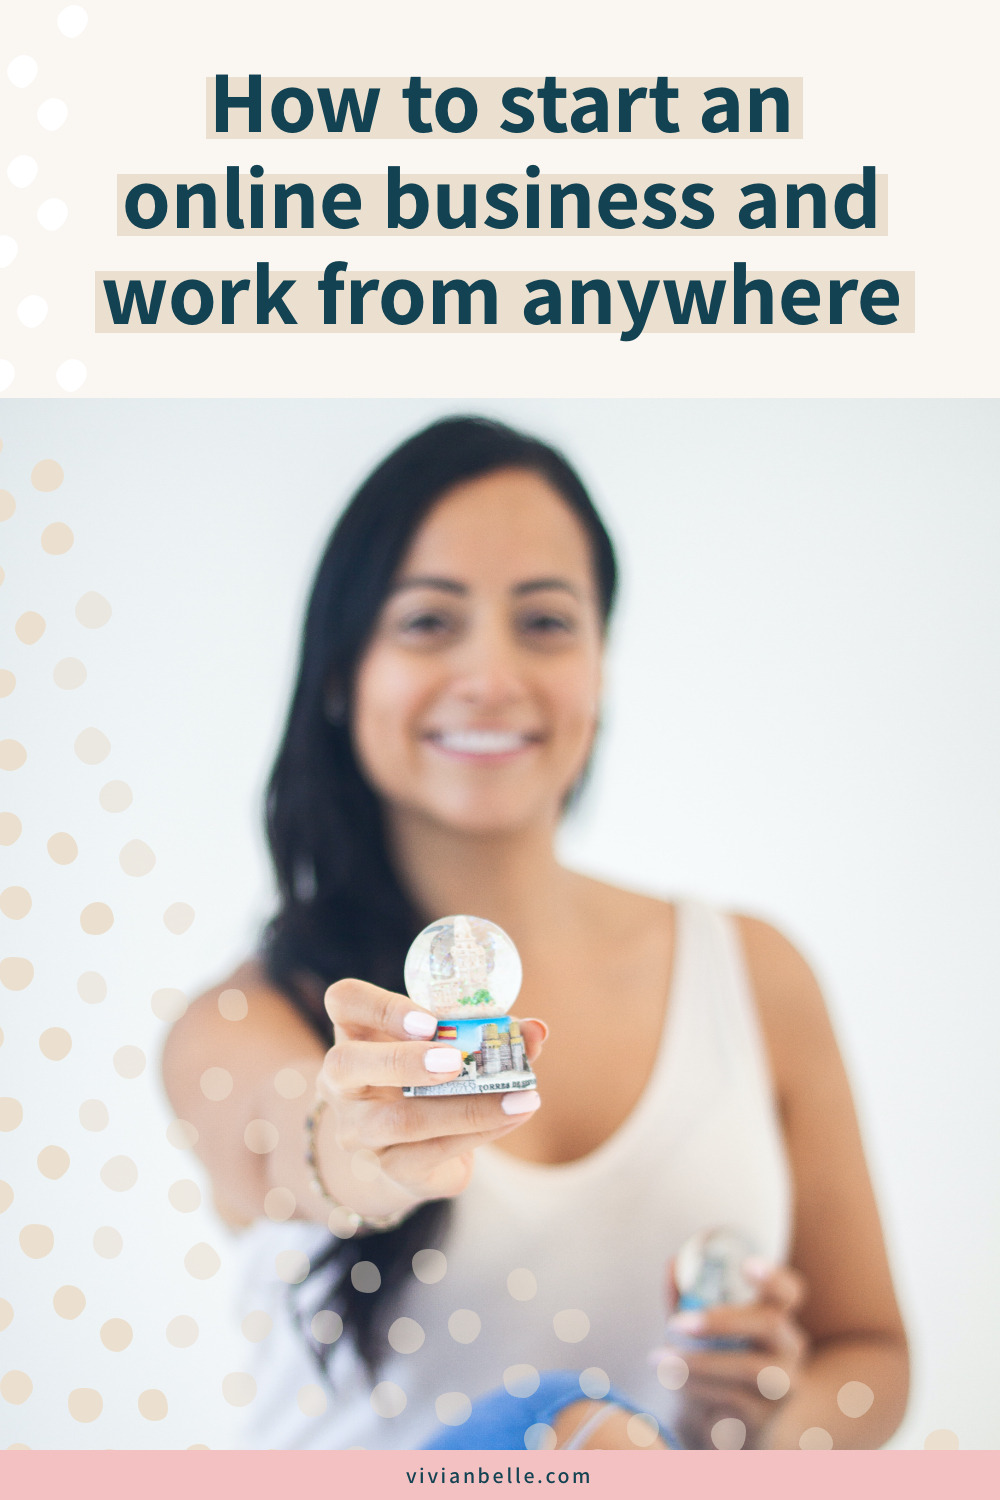 How to start an online business and work from anywhere